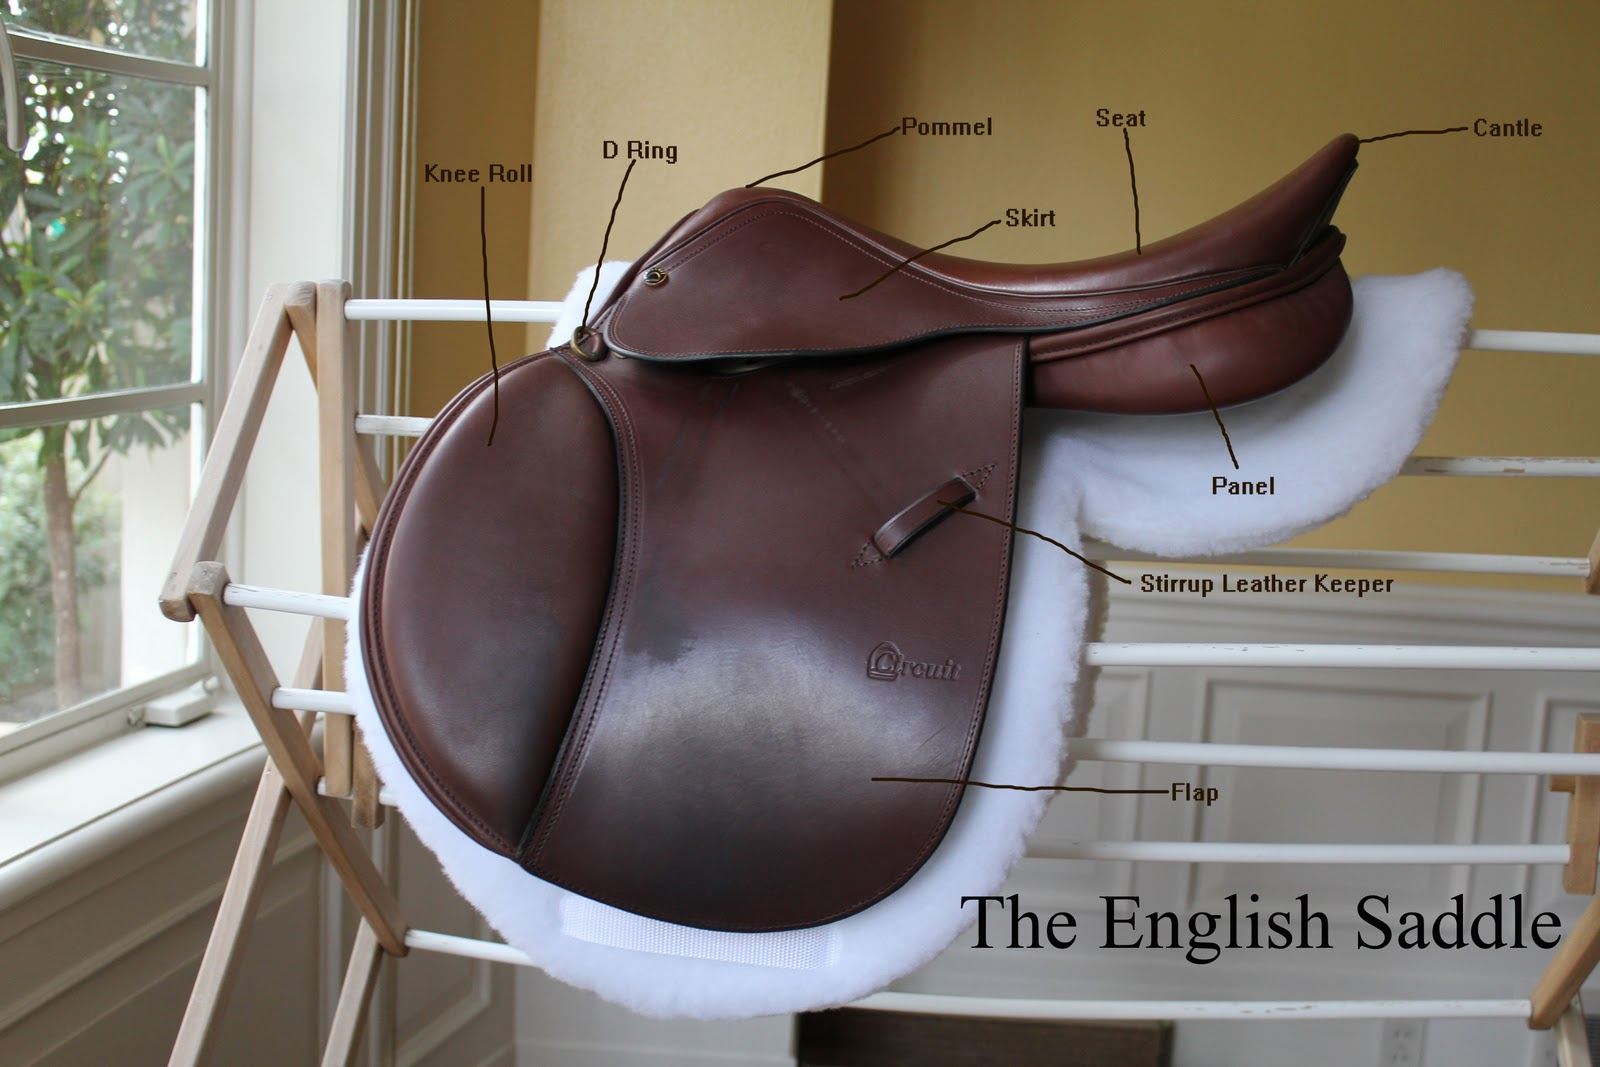 Eva's Office: Parts of a Saddle